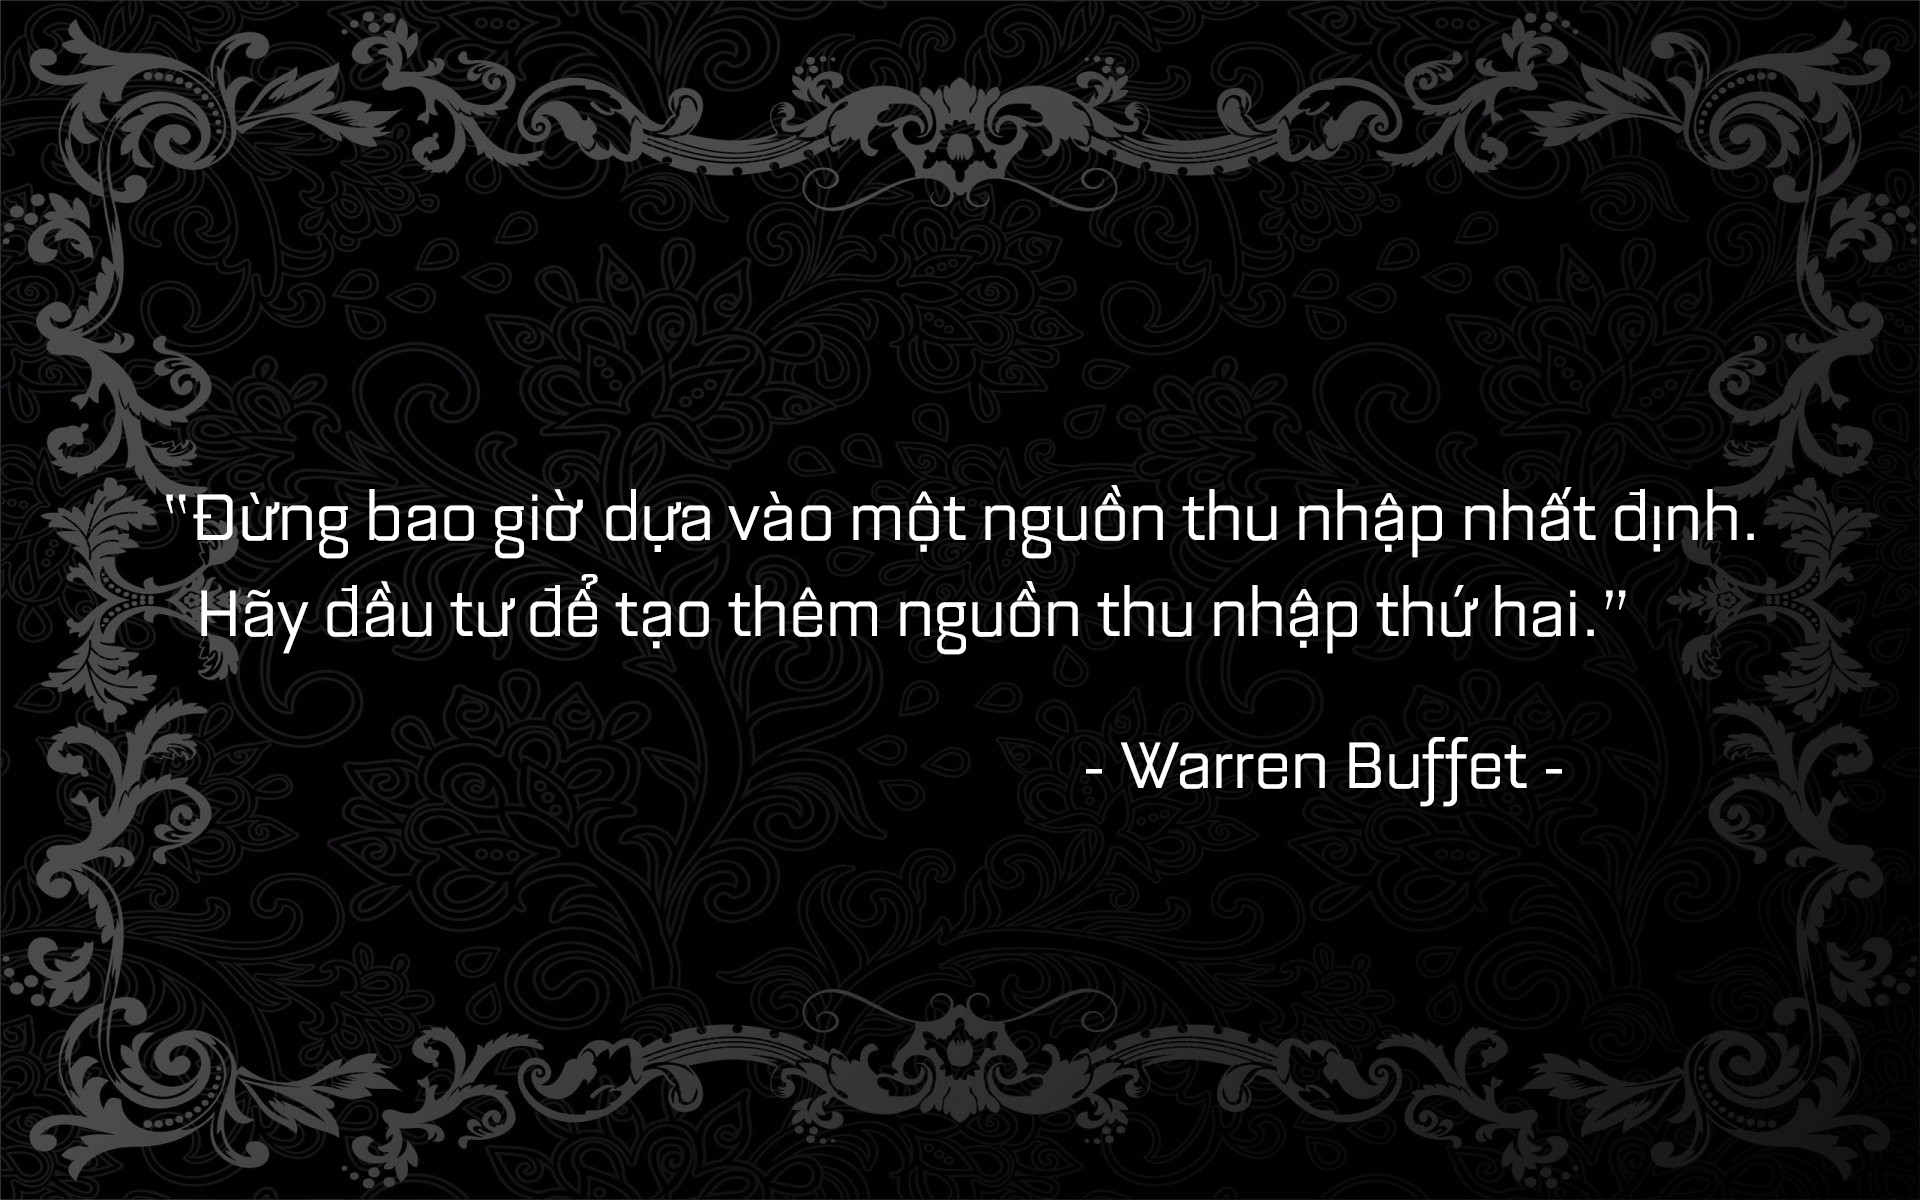 buffet quote 5.